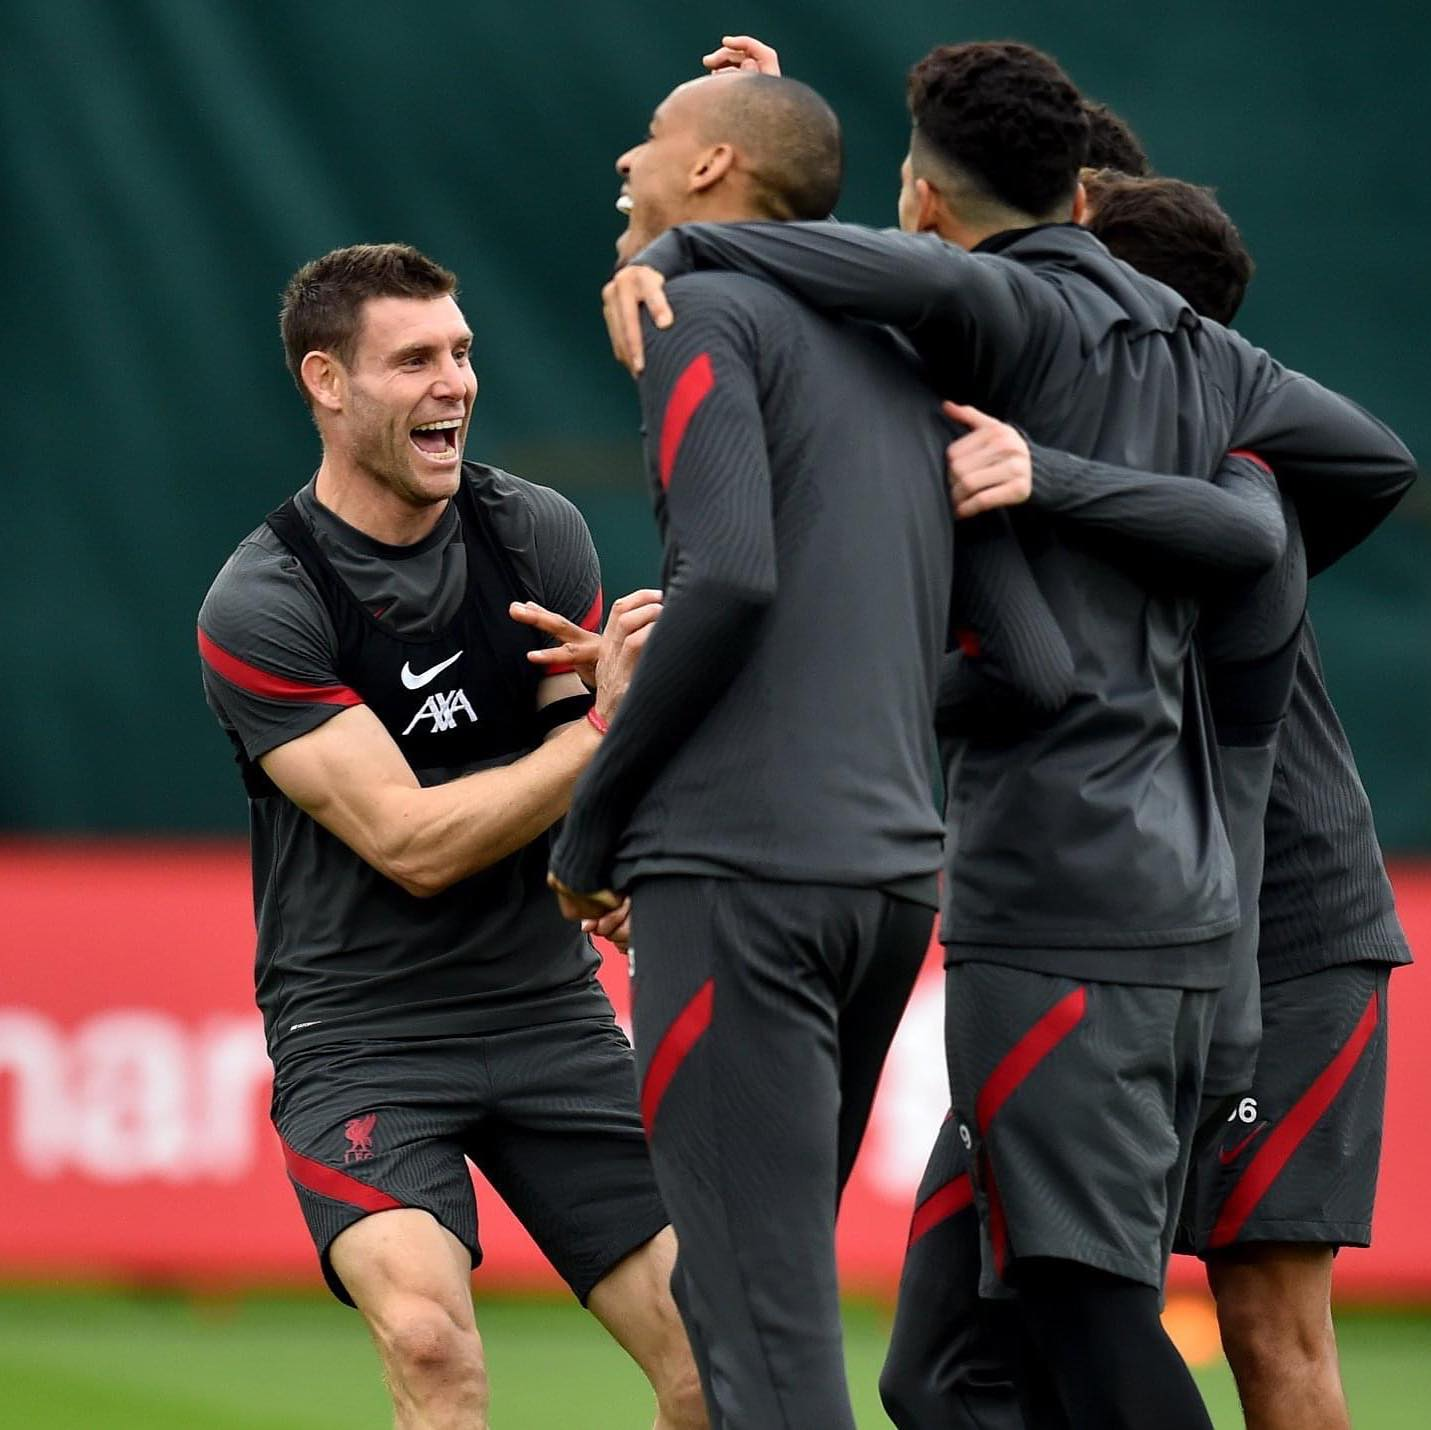 Calm before the Storm. Time to get the Champions League campaign off to a good start against the litys of Ajax tonight #YNWA